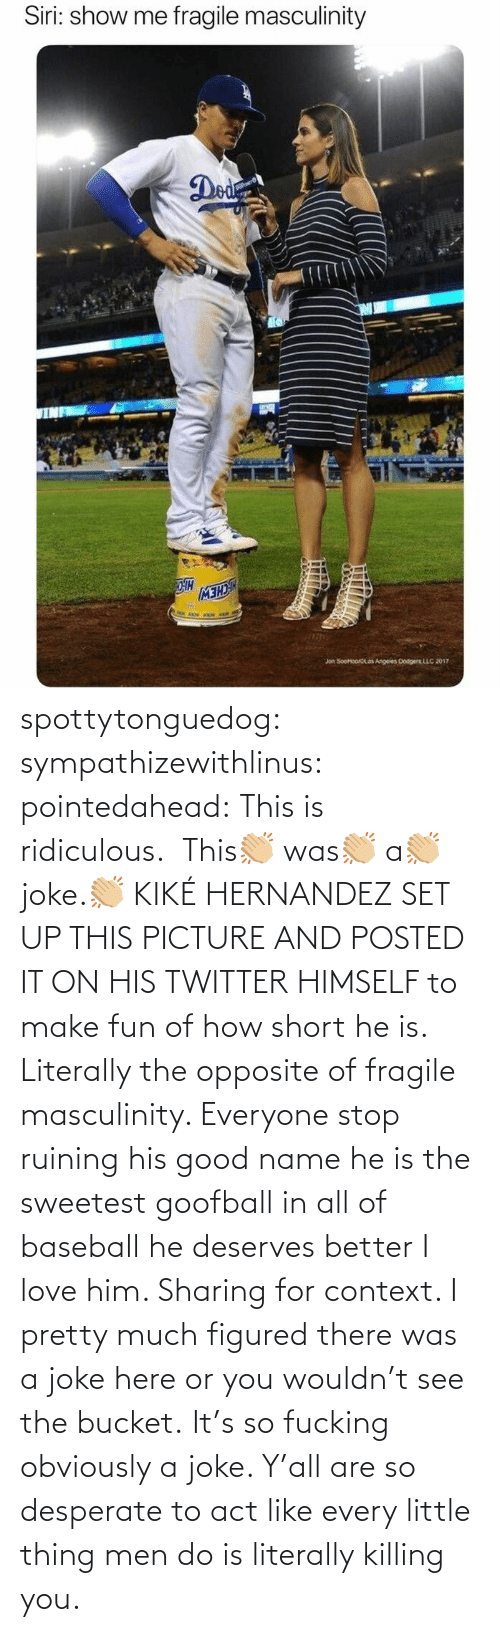 act: spottytonguedog:  sympathizewithlinus:   pointedahead: This is ridiculous.  This👏🏼 was👏🏼 a👏🏼 joke.👏🏼 KIKÉ HERNANDEZ SET UP THIS PICTURE AND POSTED IT ON HIS TWITTER HIMSELF to make fun of how short he is. Literally the opposite of fragile masculinity. Everyone stop ruining his good name he is the sweetest goofball in all of baseball he deserves better I love him.    Sharing for context. I pretty much figured there was a joke here or you wouldn't see the bucket.    It's so fucking obviously a joke. Y'all are so desperate to act like every little thing men do is literally killing you.